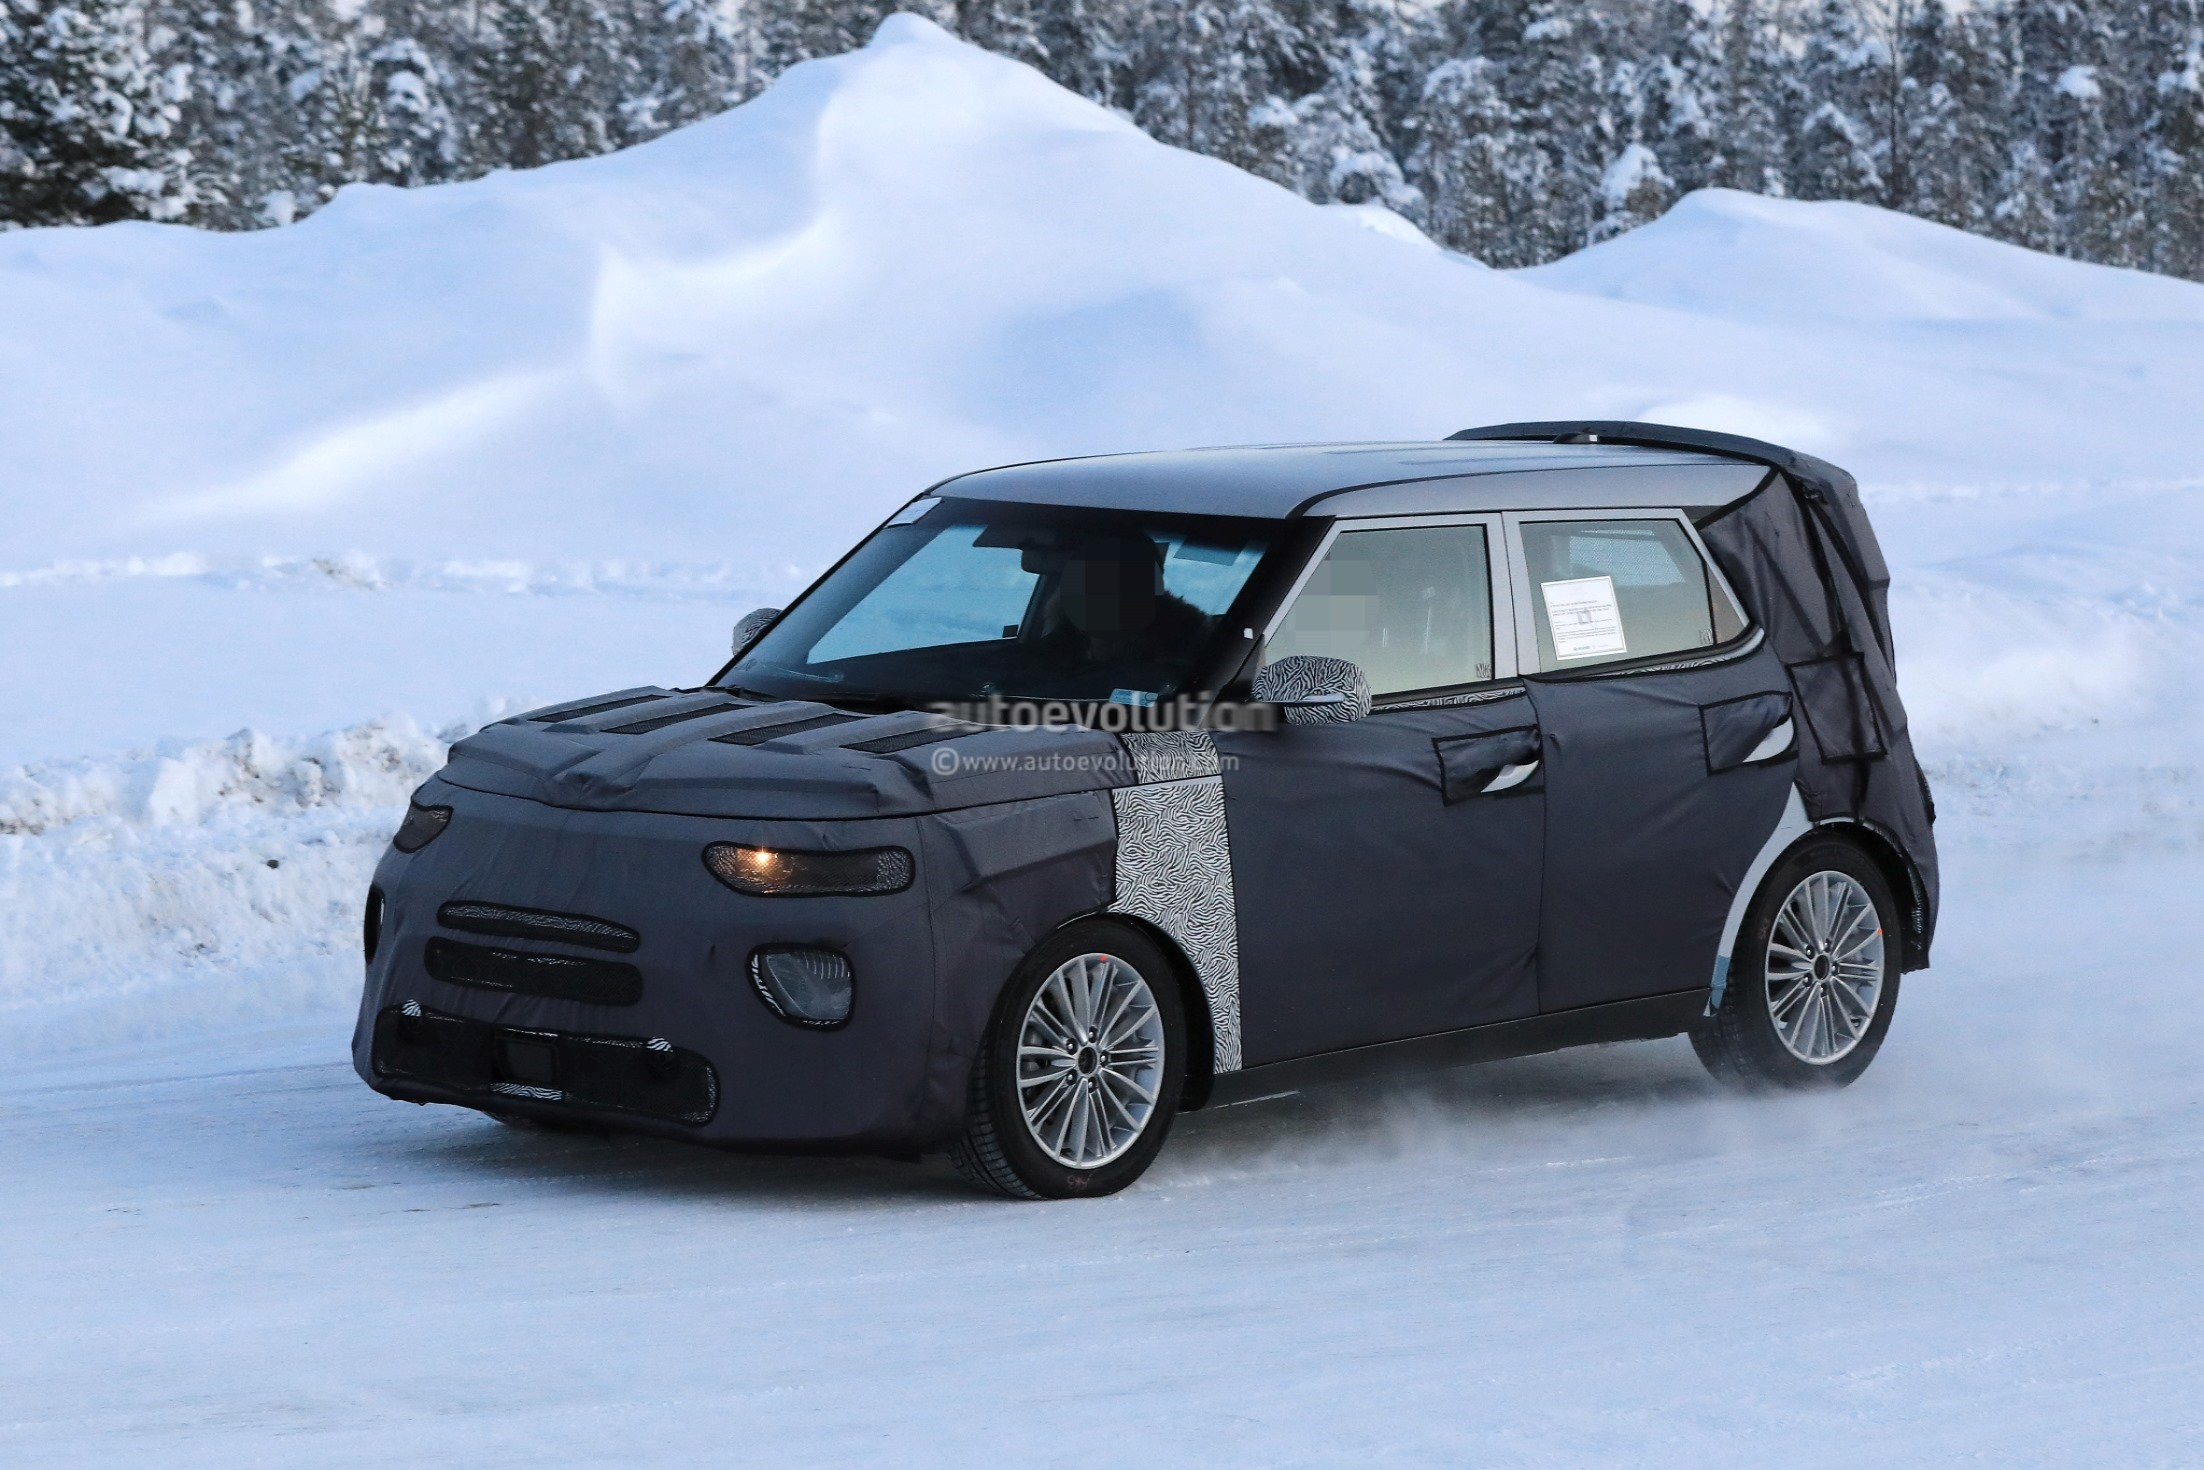 new jazzy kia ignitionlive soul driven souls